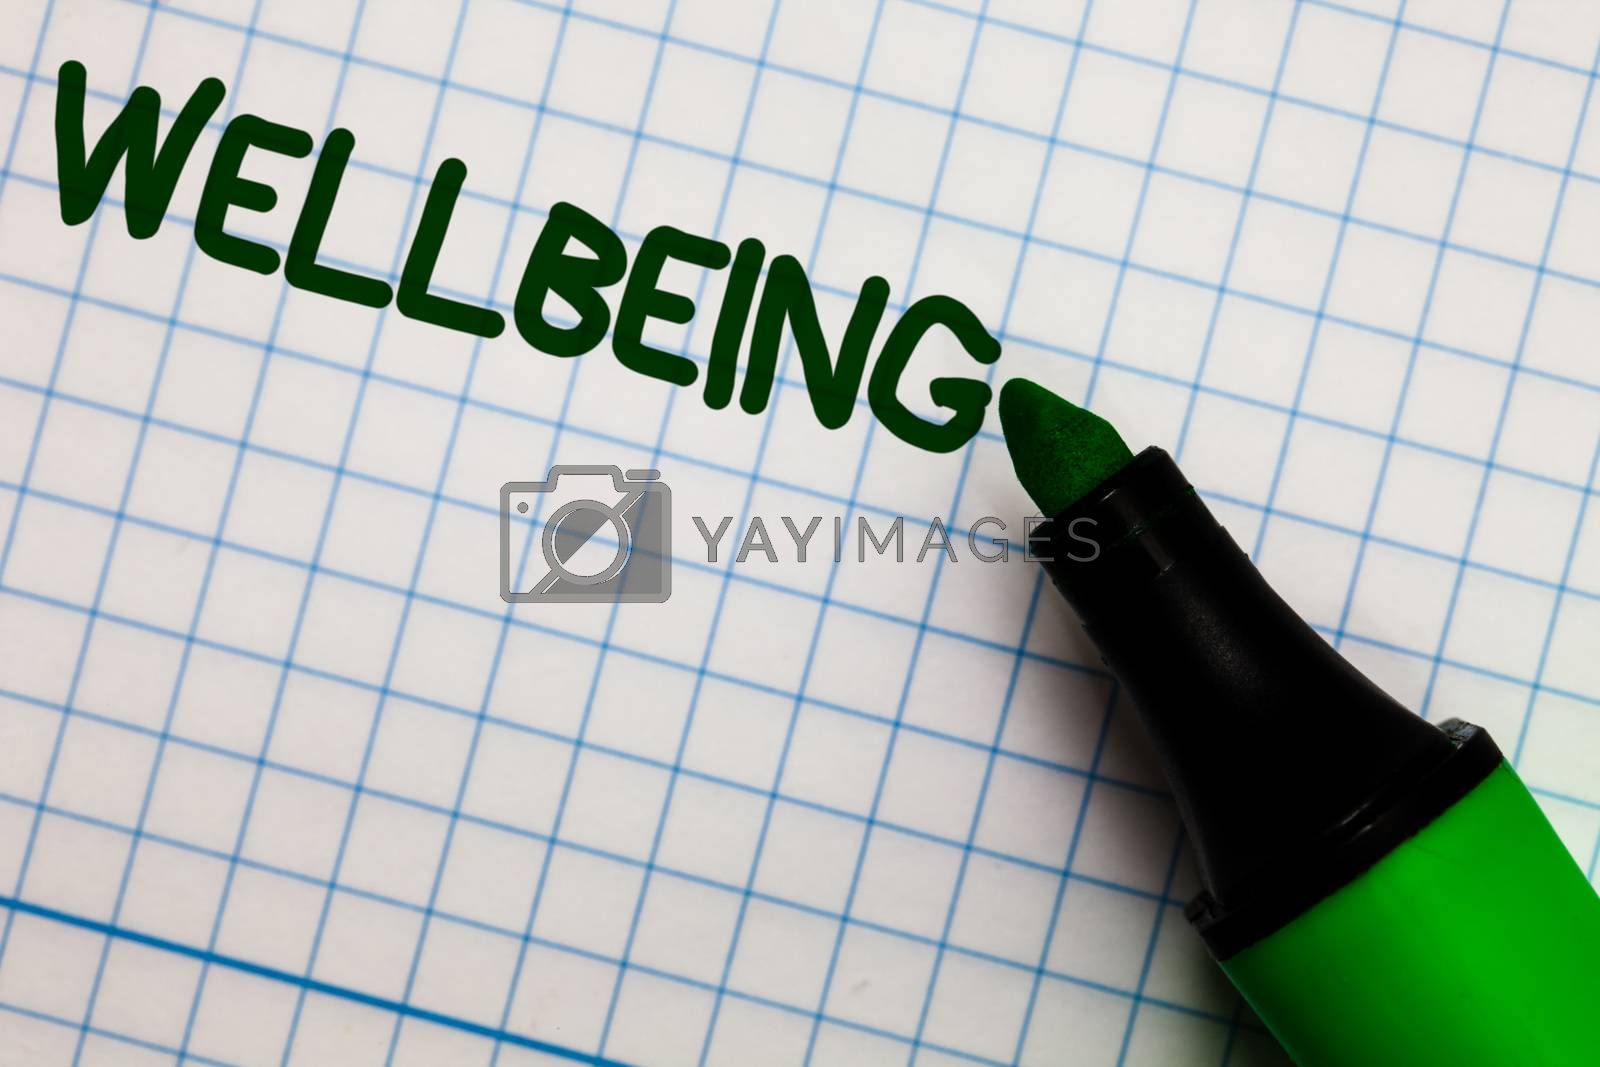 Writing note showing Wellbeing. Business photo showcasing Healthy lifestyle conditions of people life work balance Graph paper marker pen ideas theories practical work important white